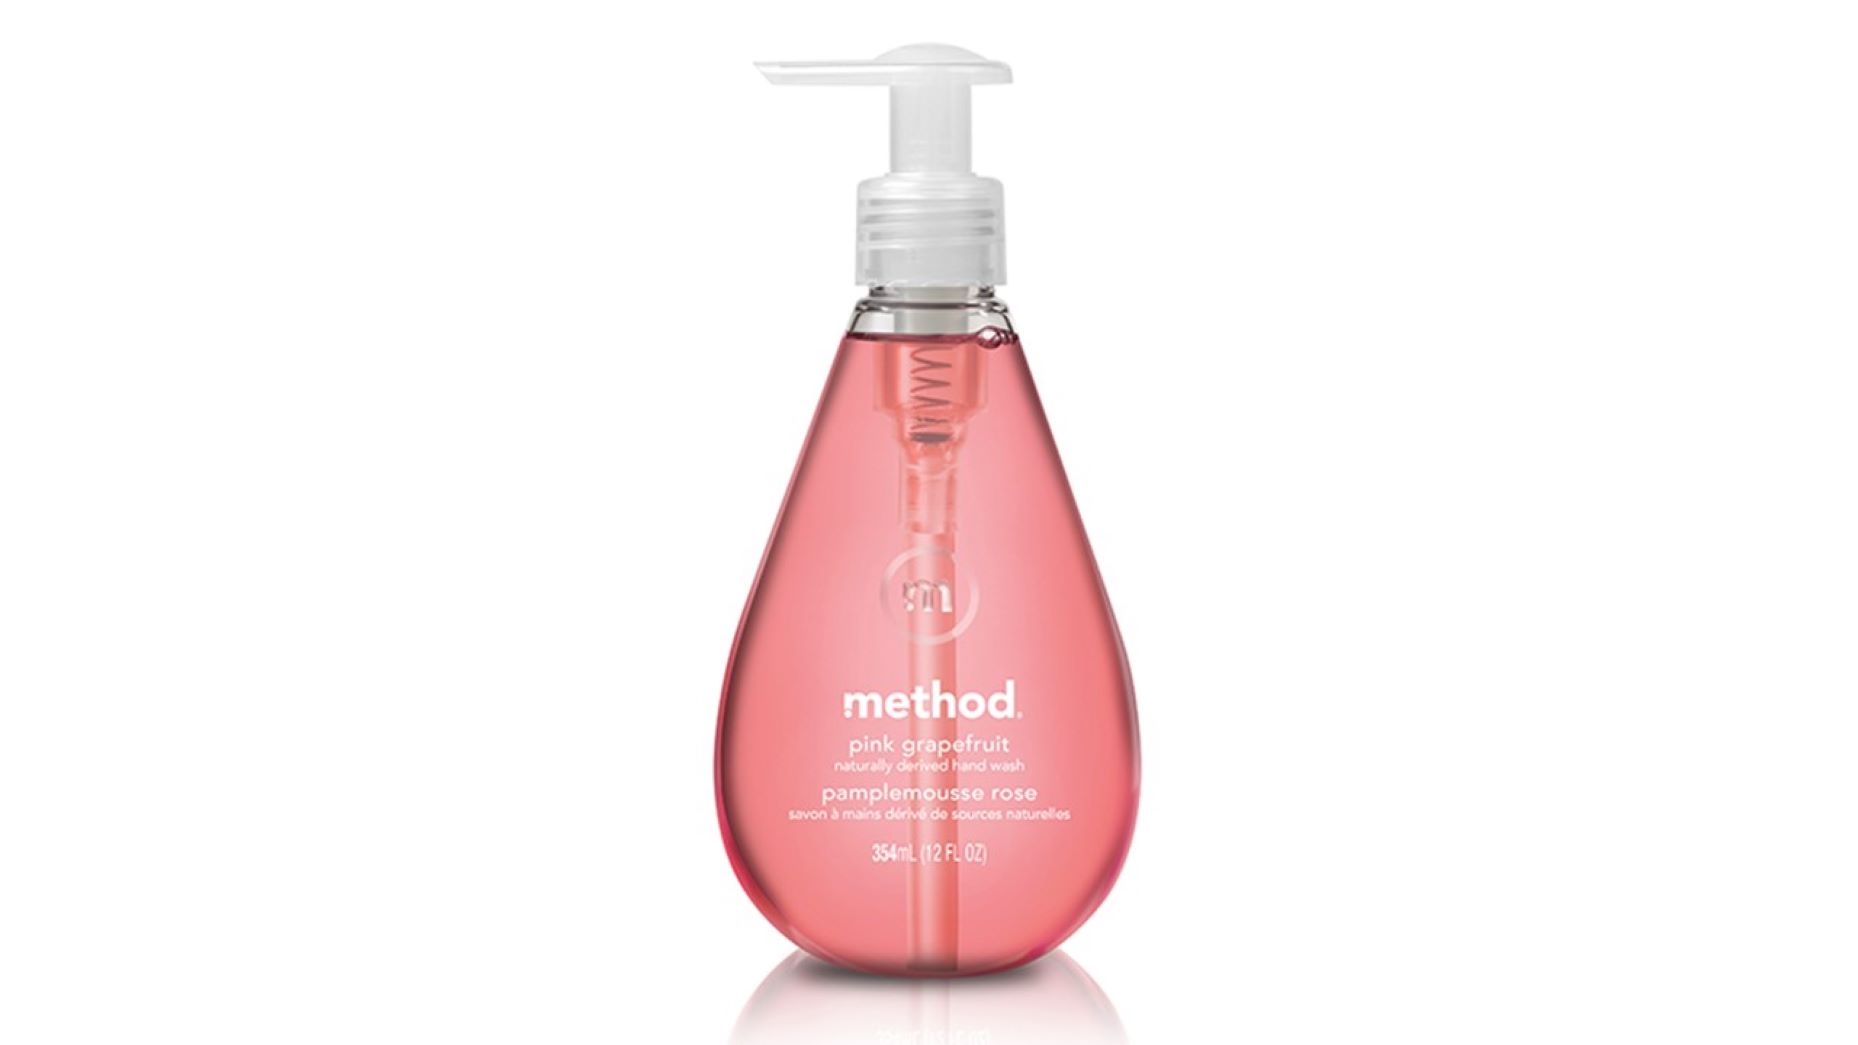 method Nestesaippua Pink Grapefruit 354ml